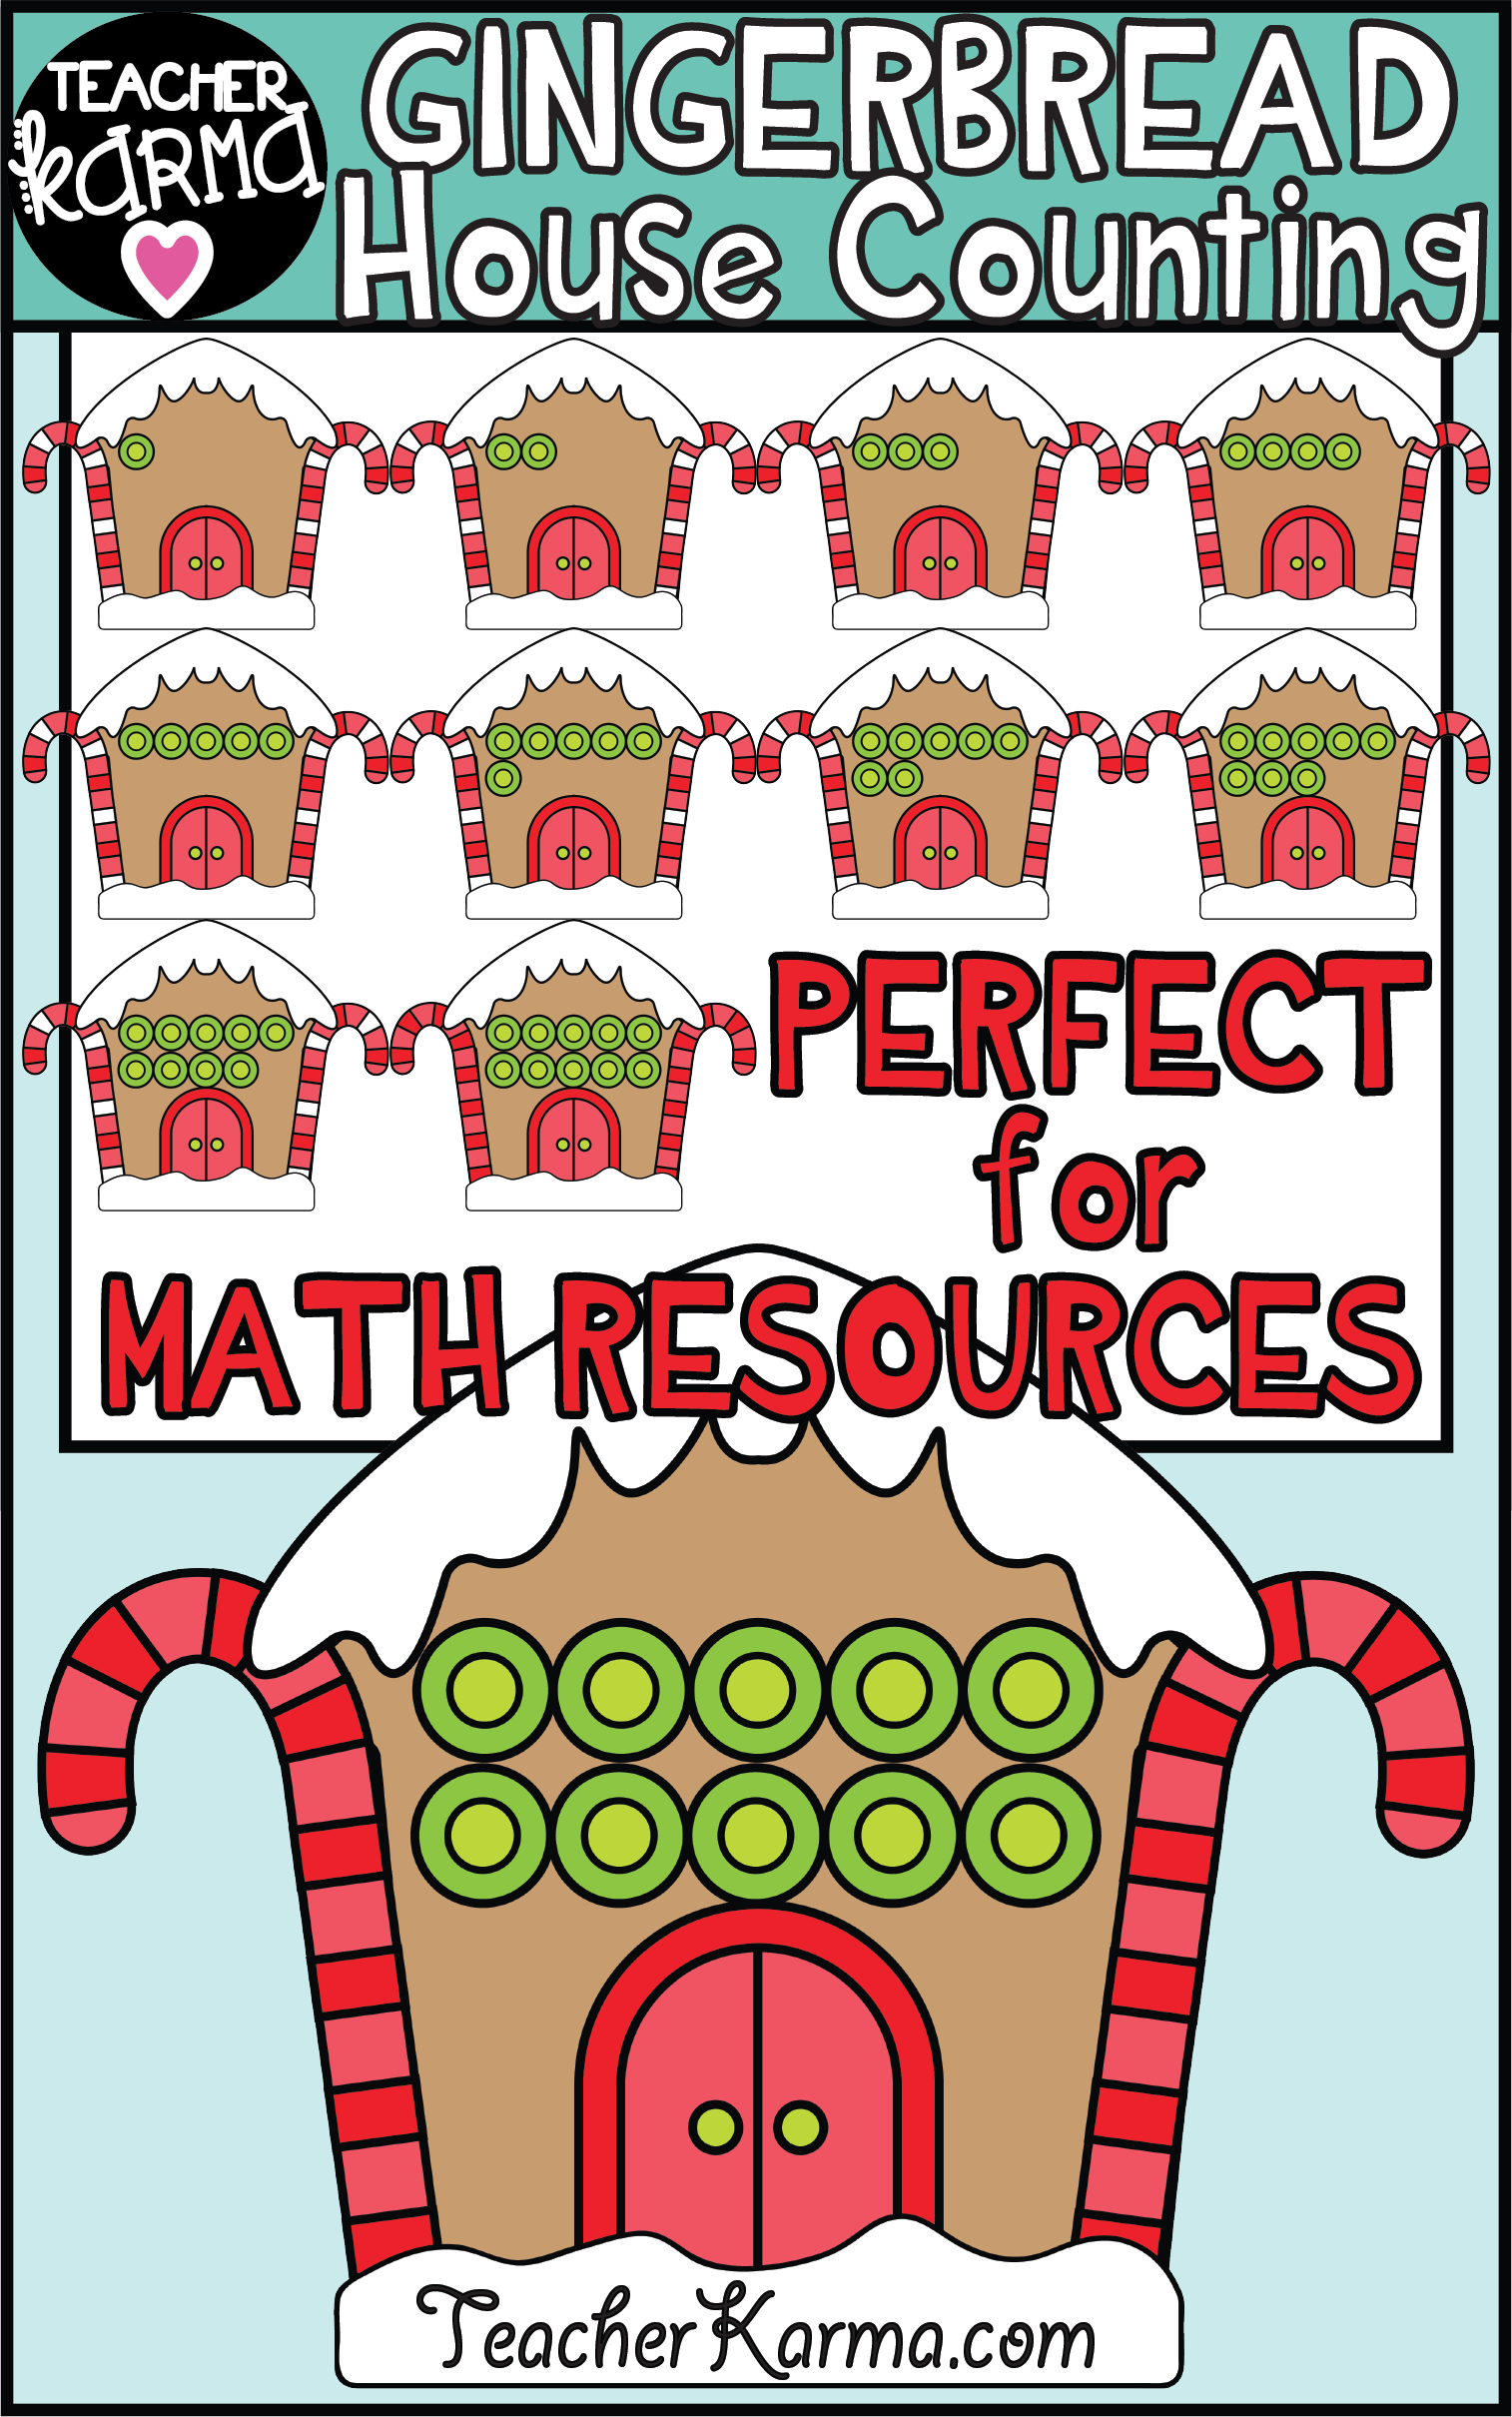 hight resolution of gingerbread house math clipart for counting and number sense these graphics are perfect for your math resources this christmas and holiday season